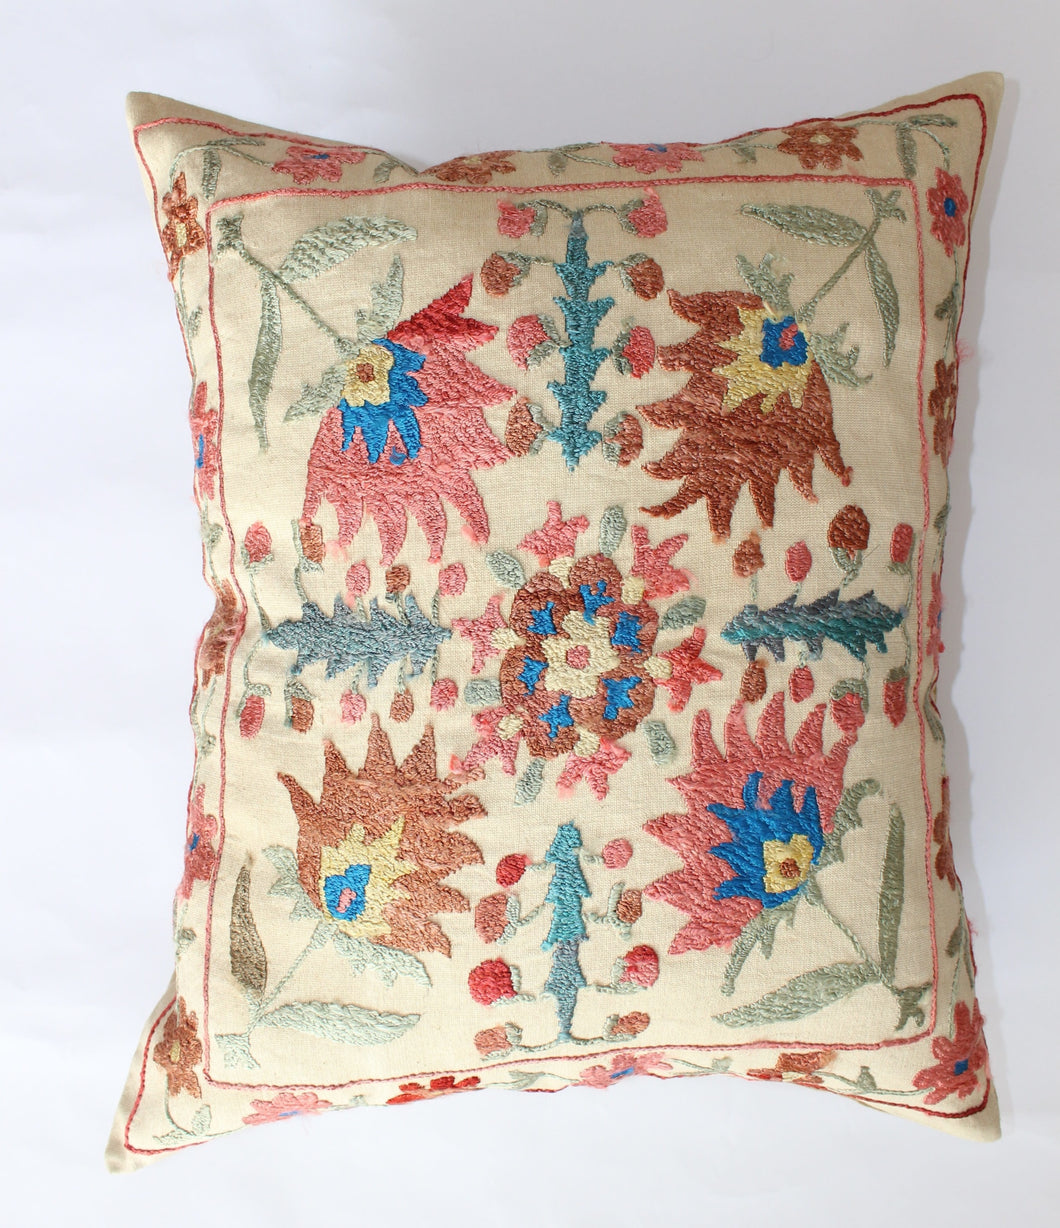 Afghan Silk Suzani Cushion Cover - 47cmx38cm (18.5